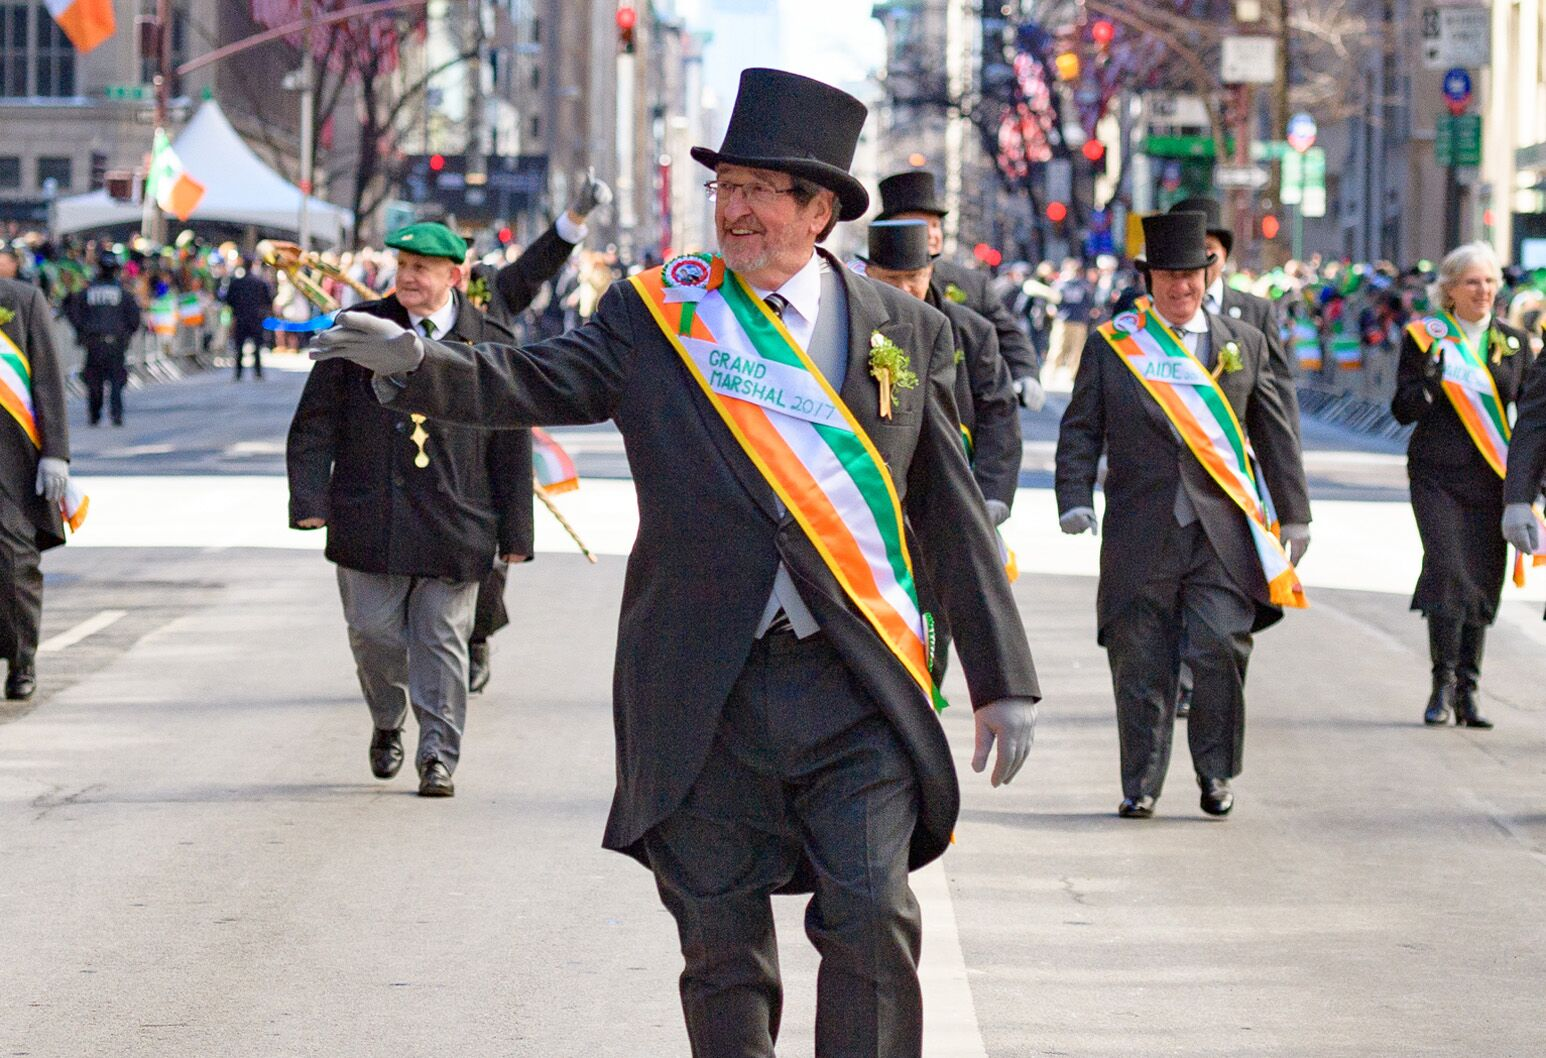 Michael Dowling as Grand Marshal of the 2017 St. Patrick's Day Parade.